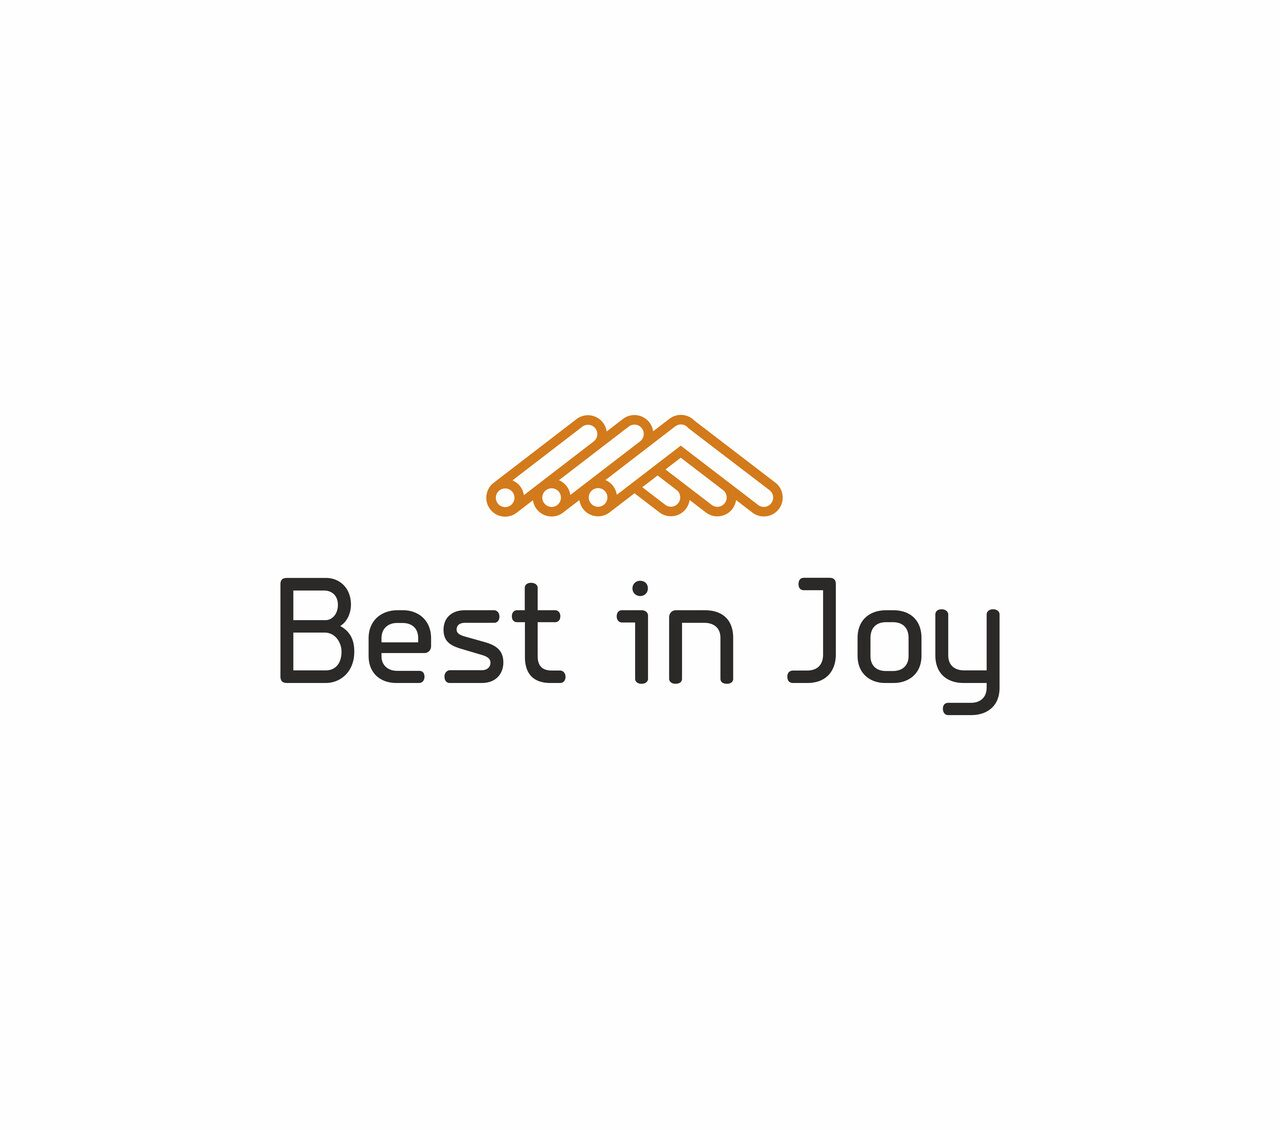 Best in Joy